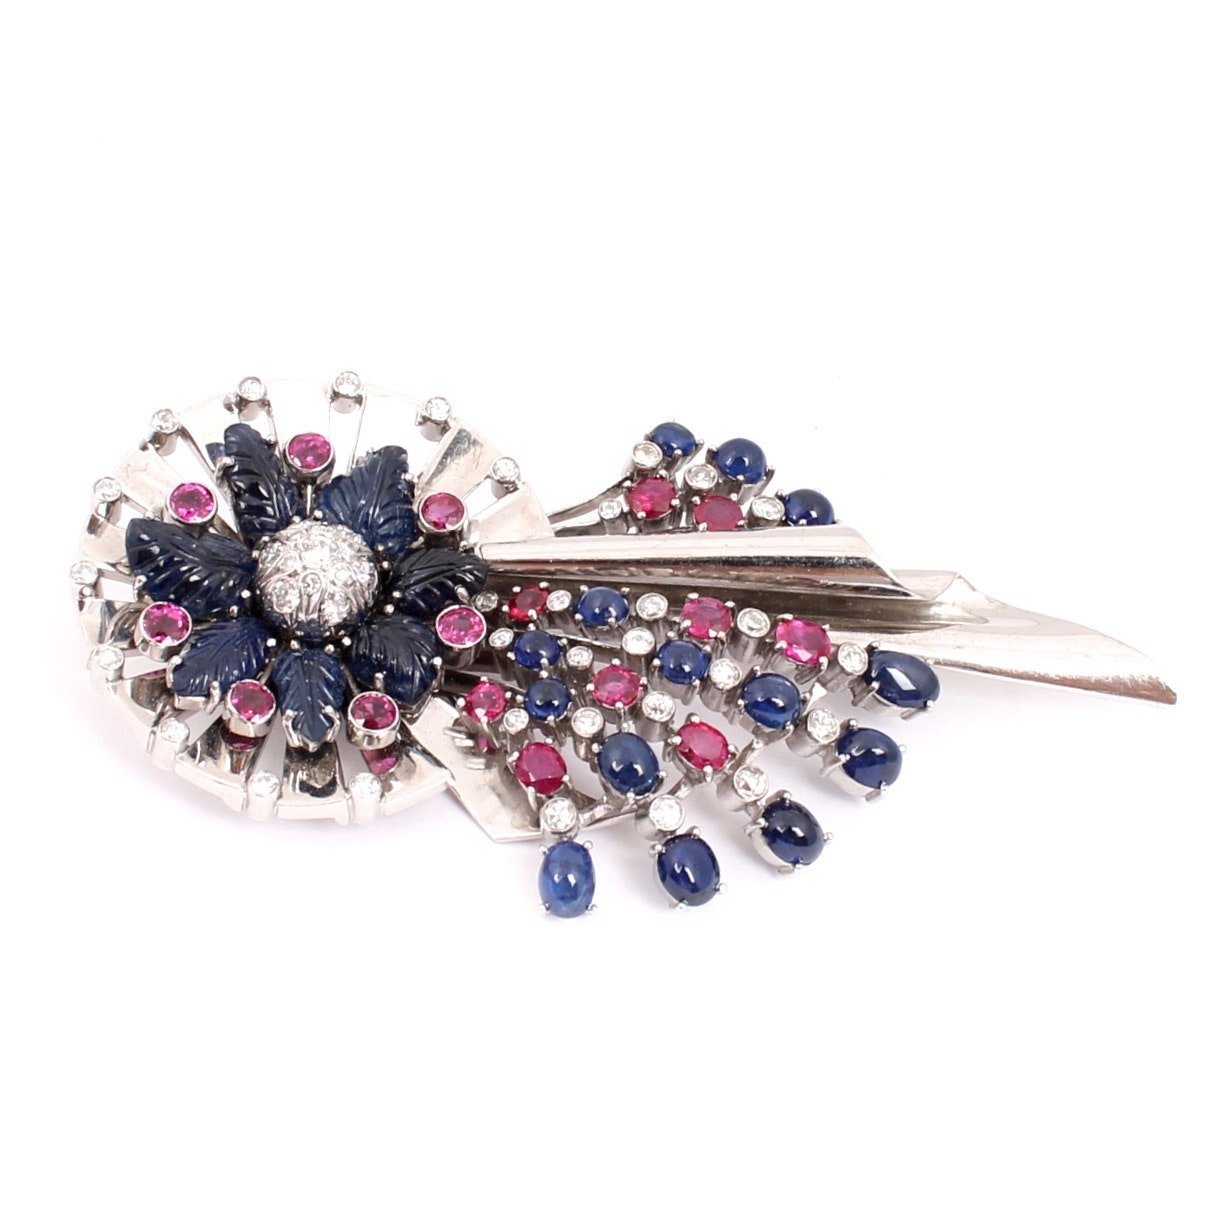 14K White Gold 1.50 CTW Diamond, Ruby, and Sapphire Brooch